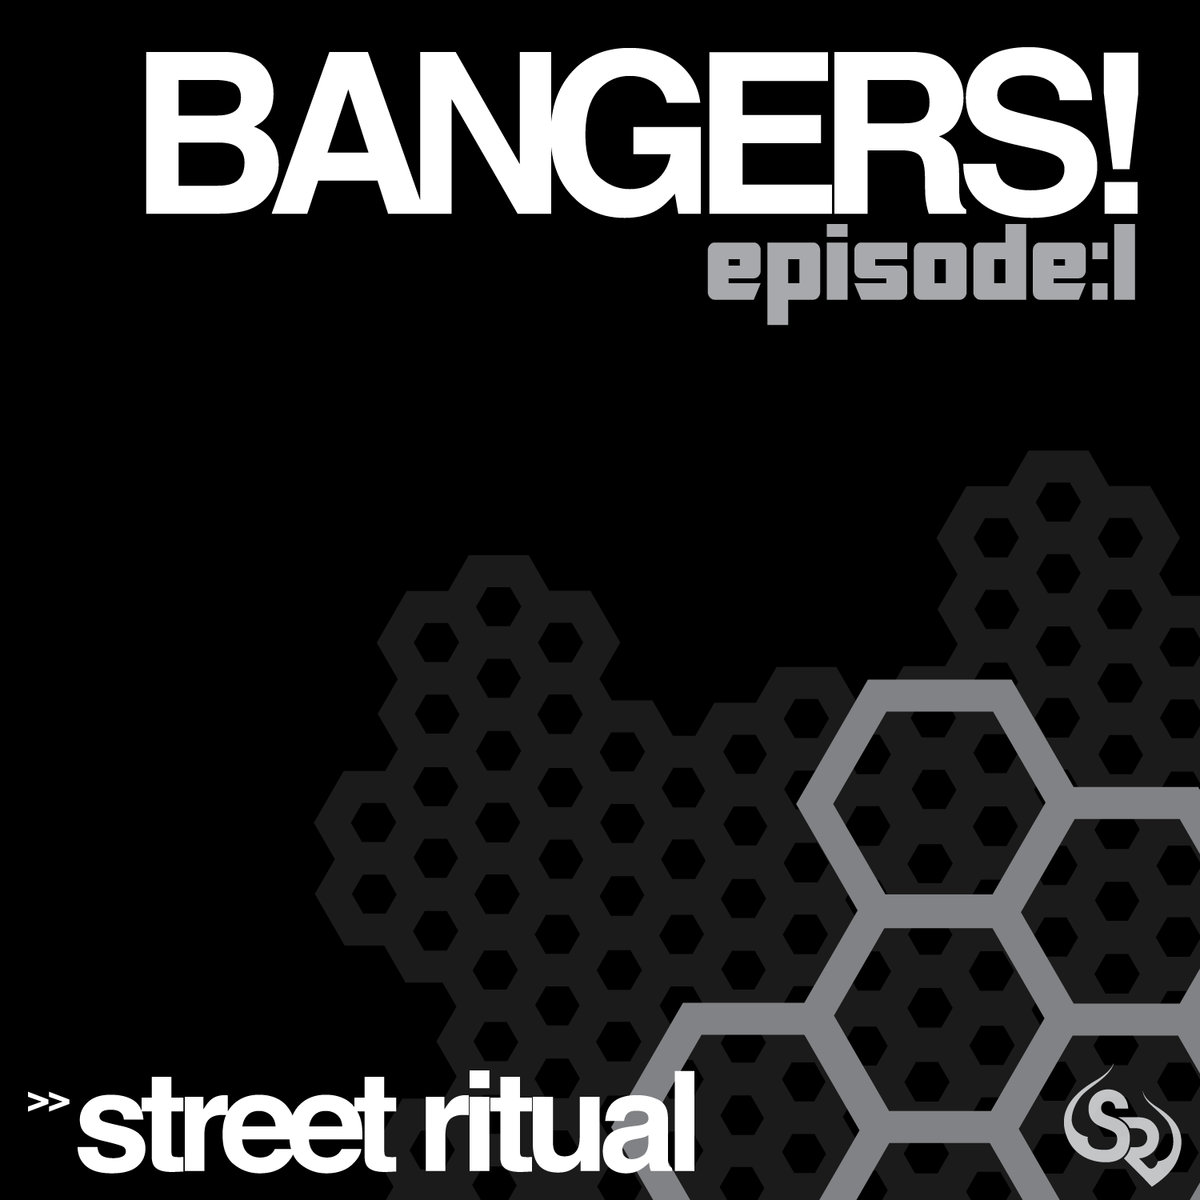 Various Artists - Bangers! Episode:1 @ 'Various Artists - Bangers! Episode:1' album (bass, electronic)